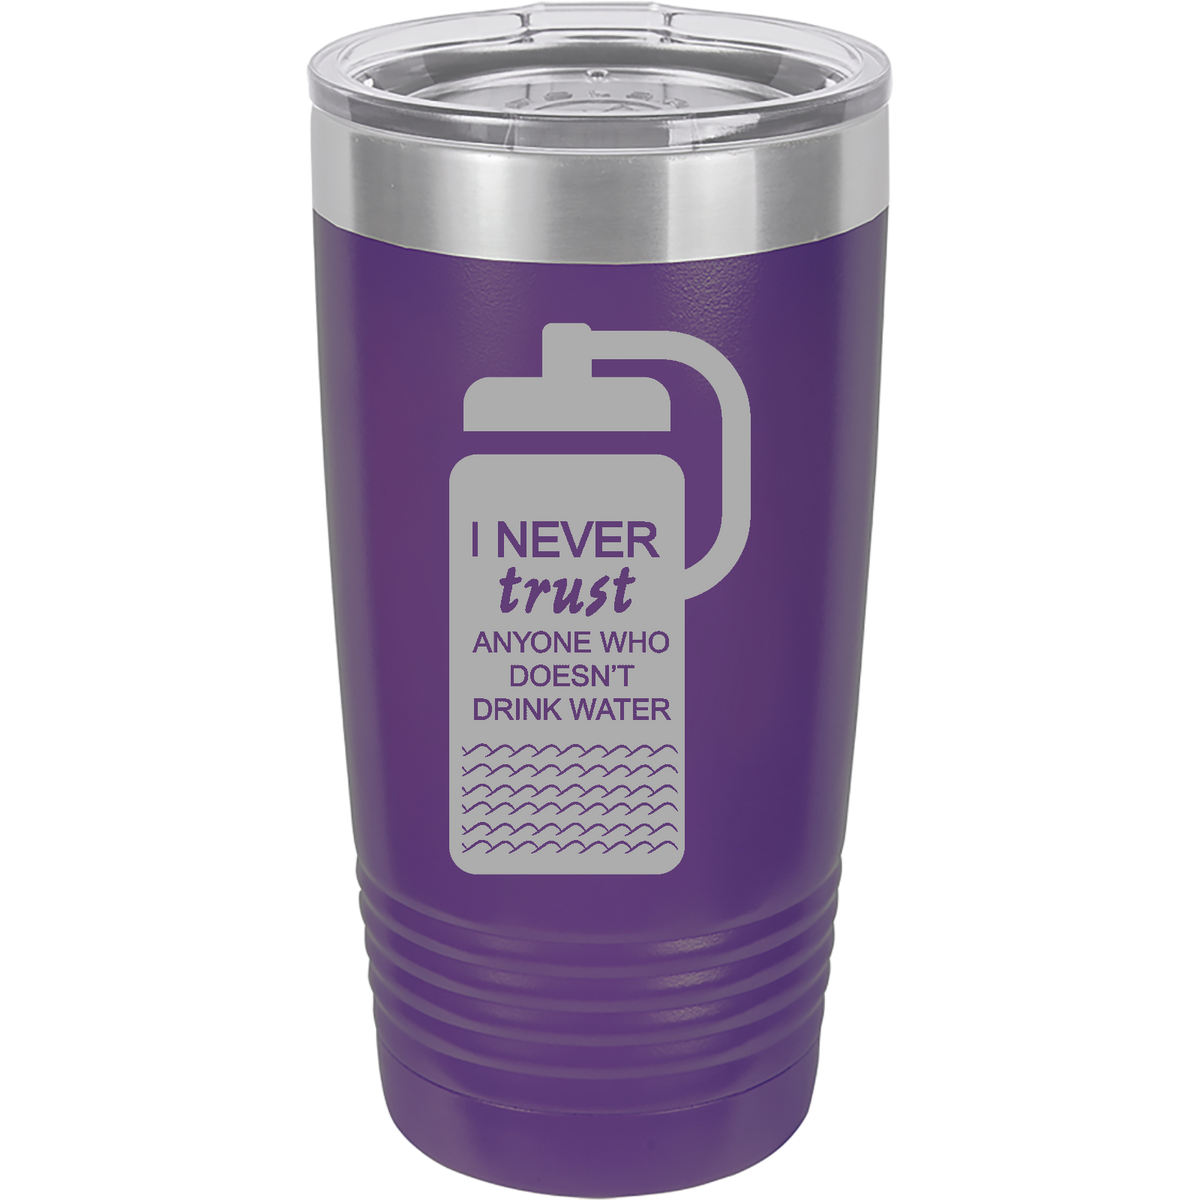 I never trust anyone who doesn't drink water - 20oz. Engraved Tumbler with Clear Lid